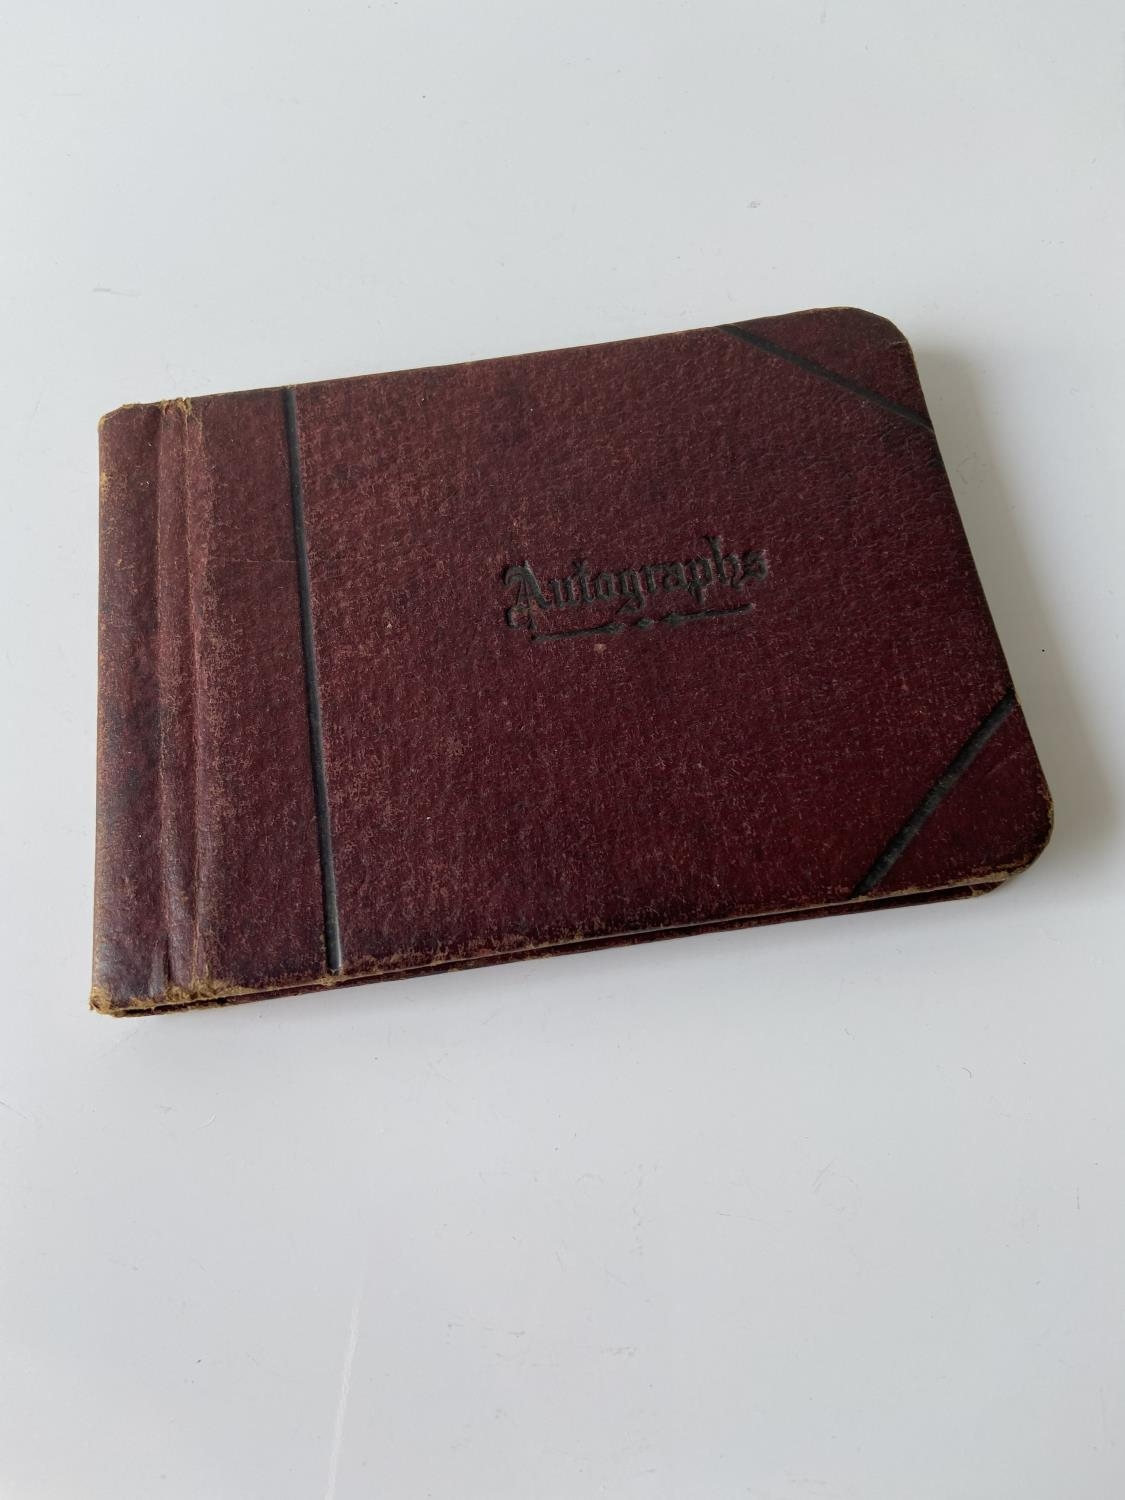 An old autograph album containing various poems, sayings & doodles